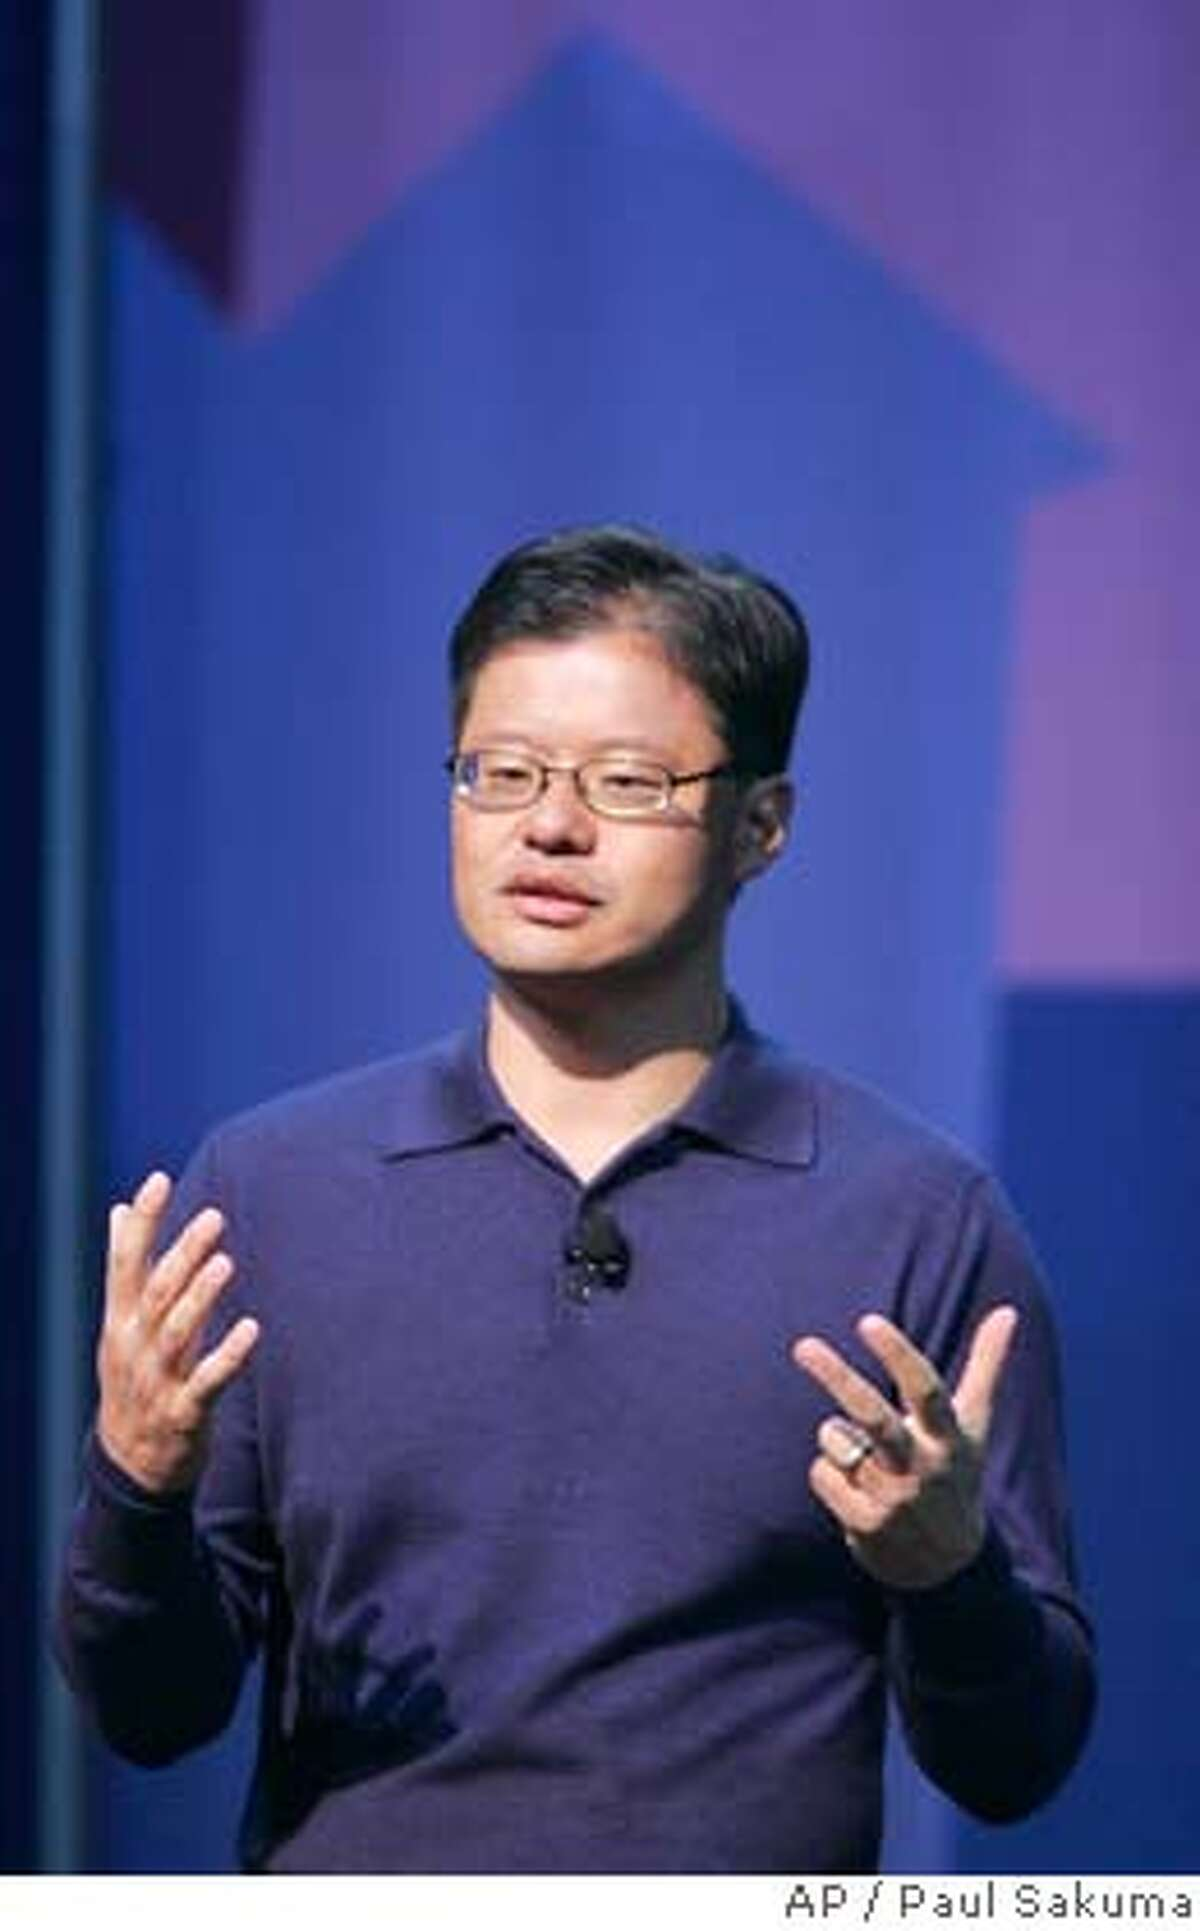 **FILE** Yahoo CEO Jerry Yang gives a keynote address at the Consumer Electronics Show (CES) in Las Vegas, in this Jan. 7, 2008 file photo. Yahoo Inc. Chief Executive Jerry Yang told employees Wednesday Feb. 6, 2008, that the struggling Internet pioneer is still examining ways to avoid a takeover by rival Microsoft Corp. (AP Photo/Paul Sakuma, file)